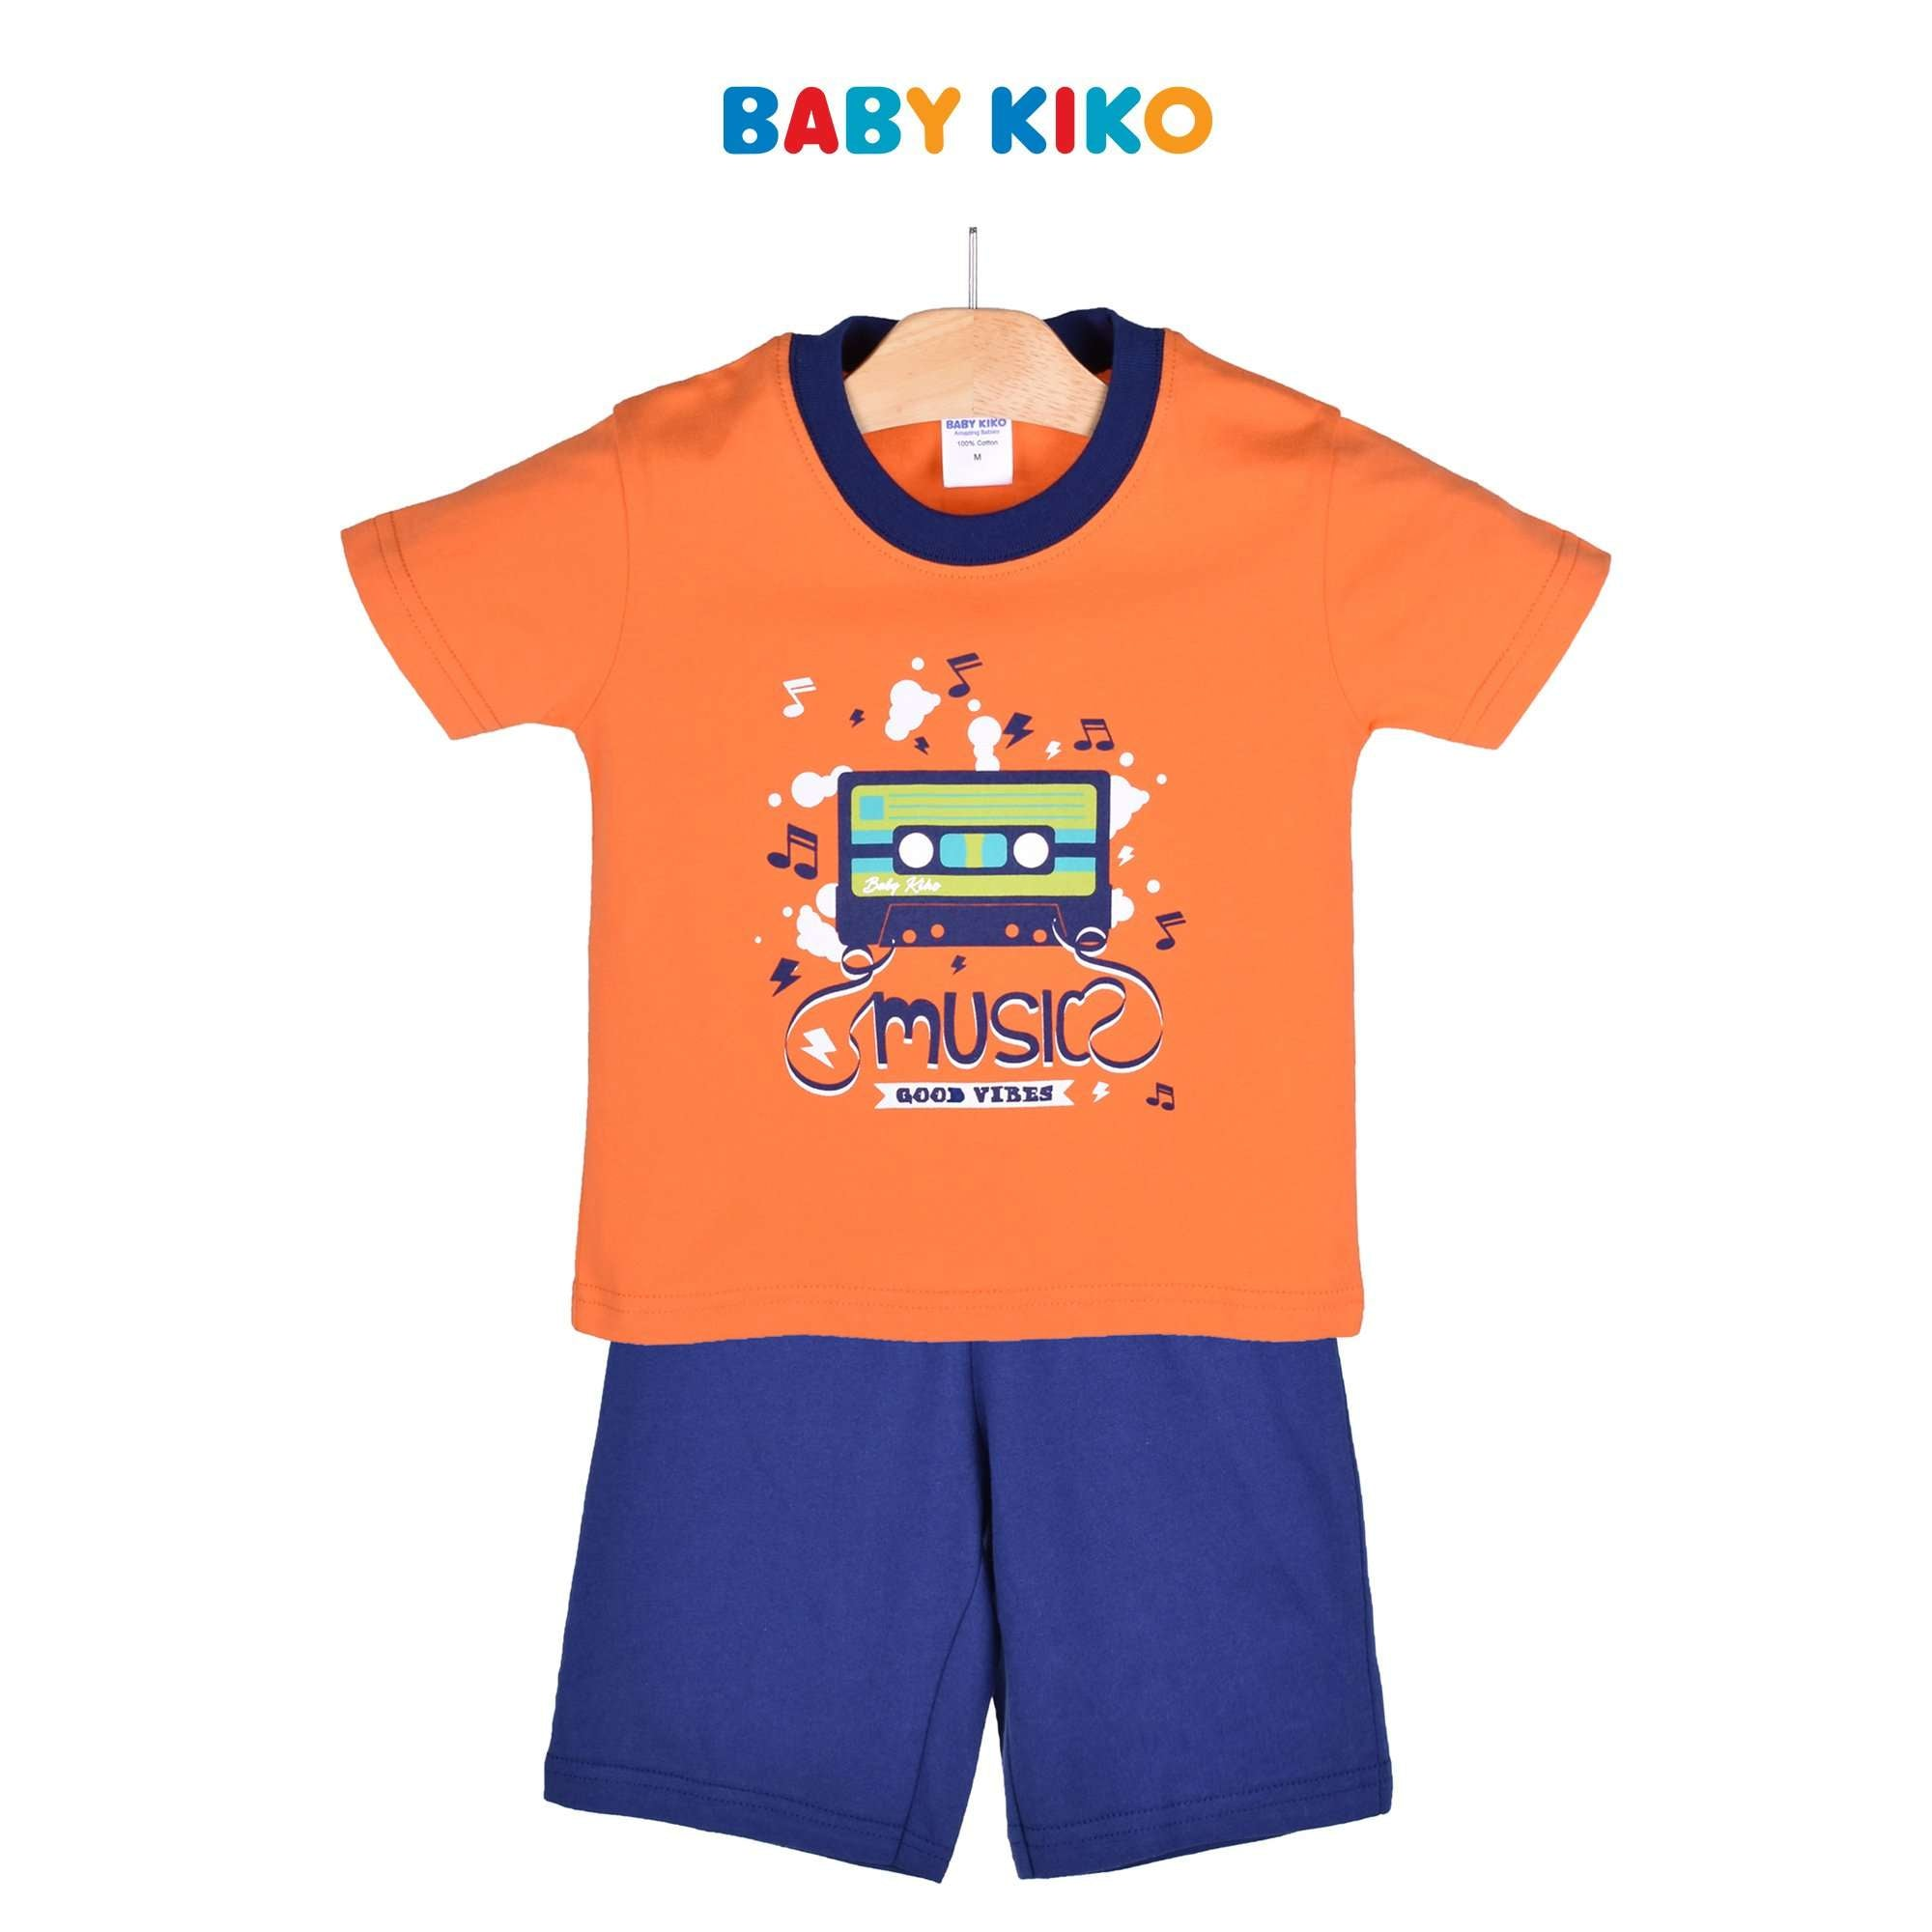 Baby KIKO Toddler Boy Short Sleeve Bermuda Suit 325151-411 : Buy Baby KIKO online at CMG.MY